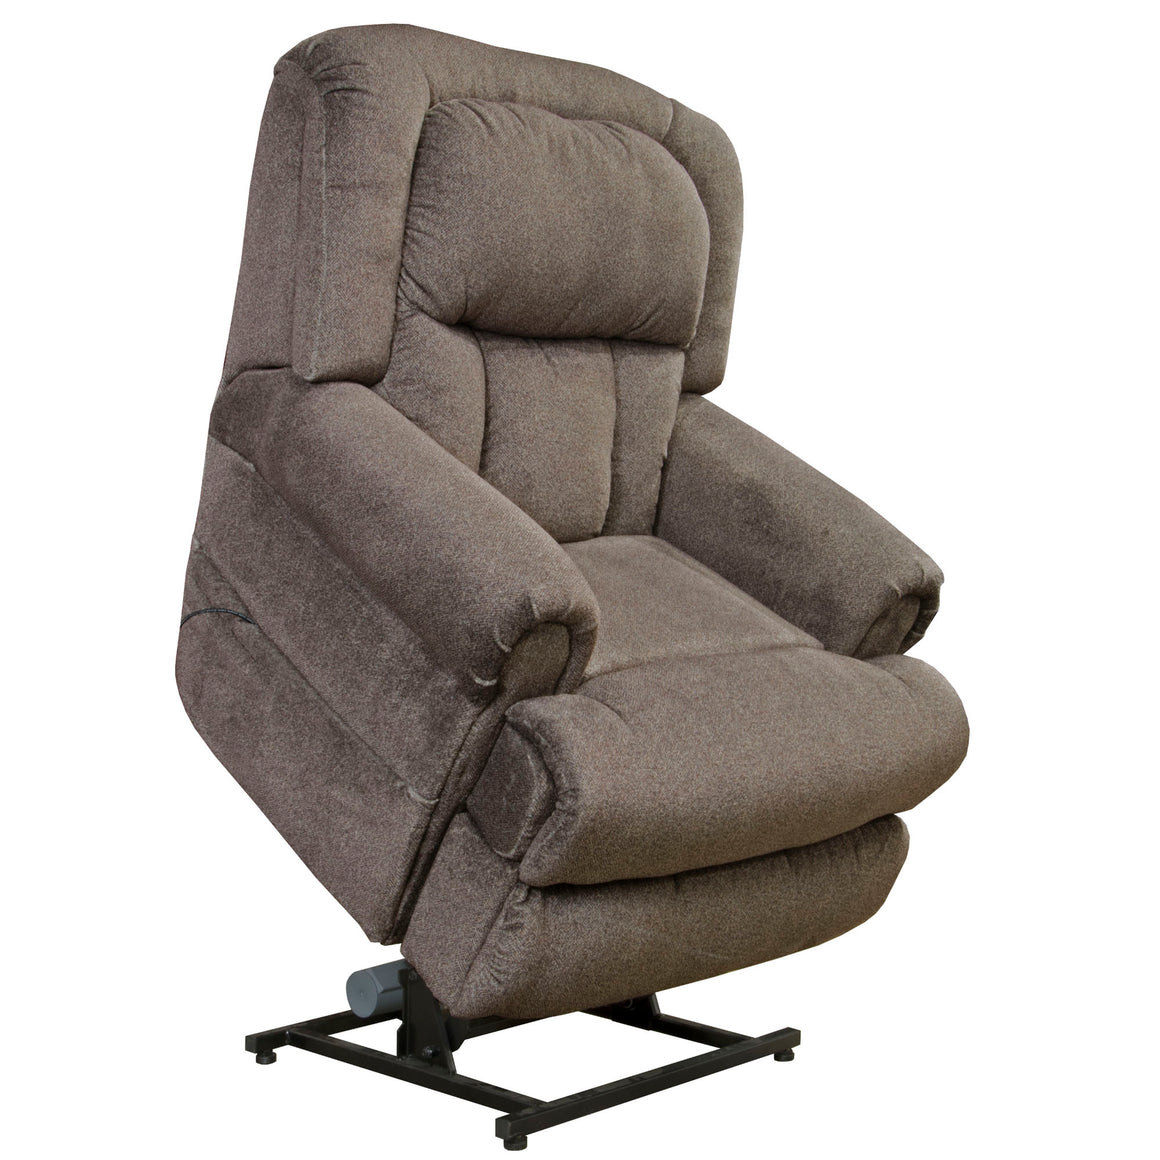 Burns 4847 Power Lift Chair & Recliner